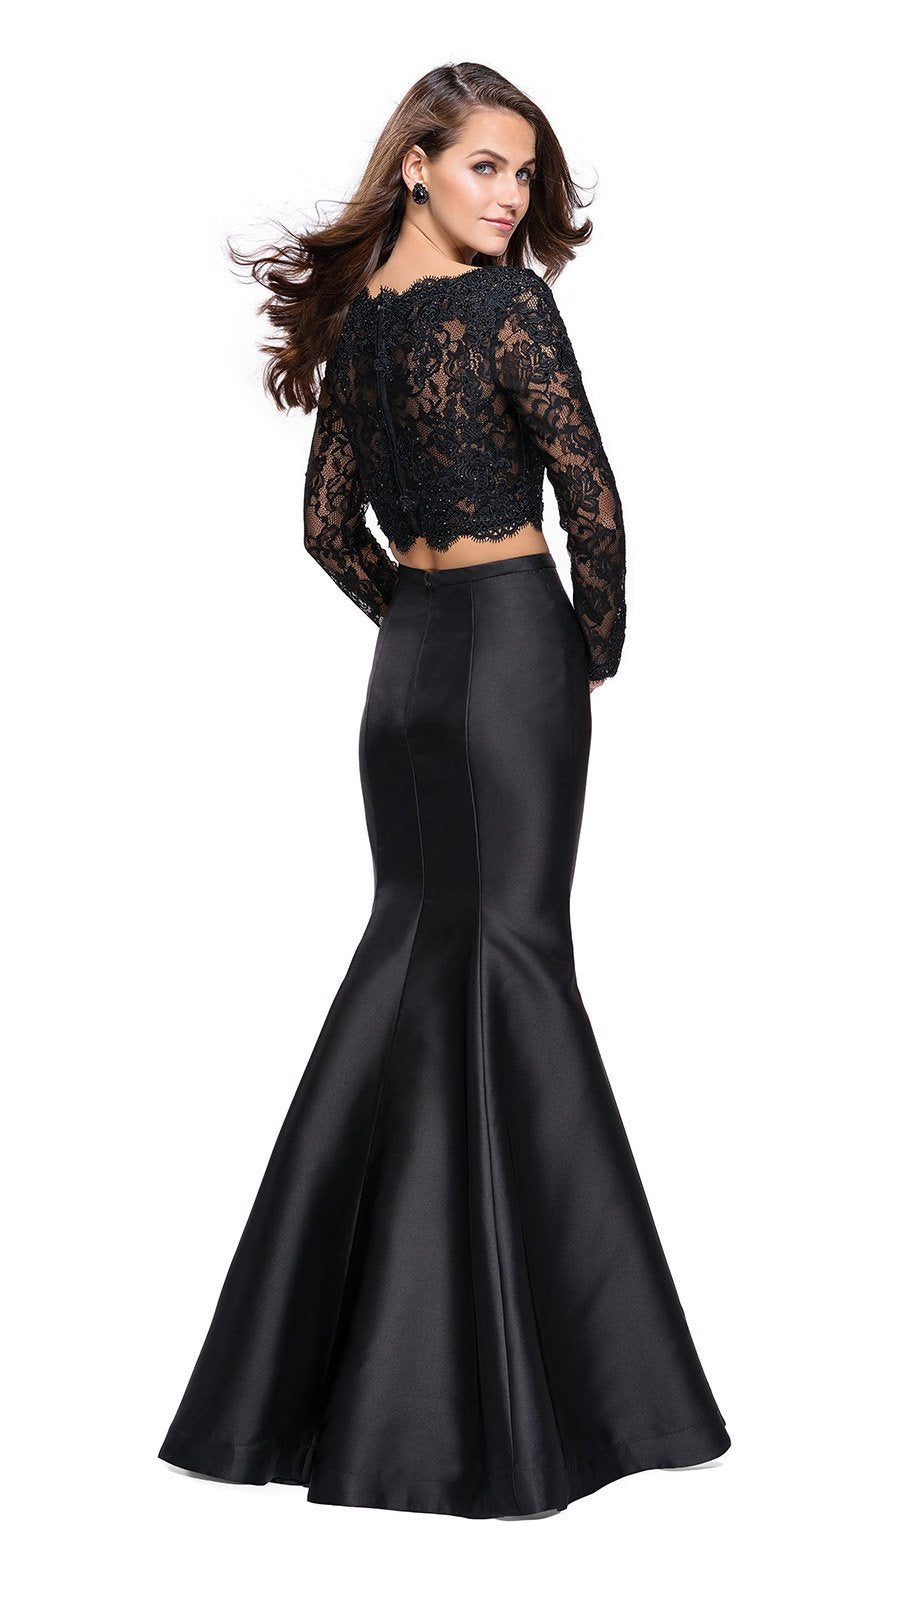 La Femme - 25324SC Long Sleeve Lace Bodice Sleek Mermaid Dress